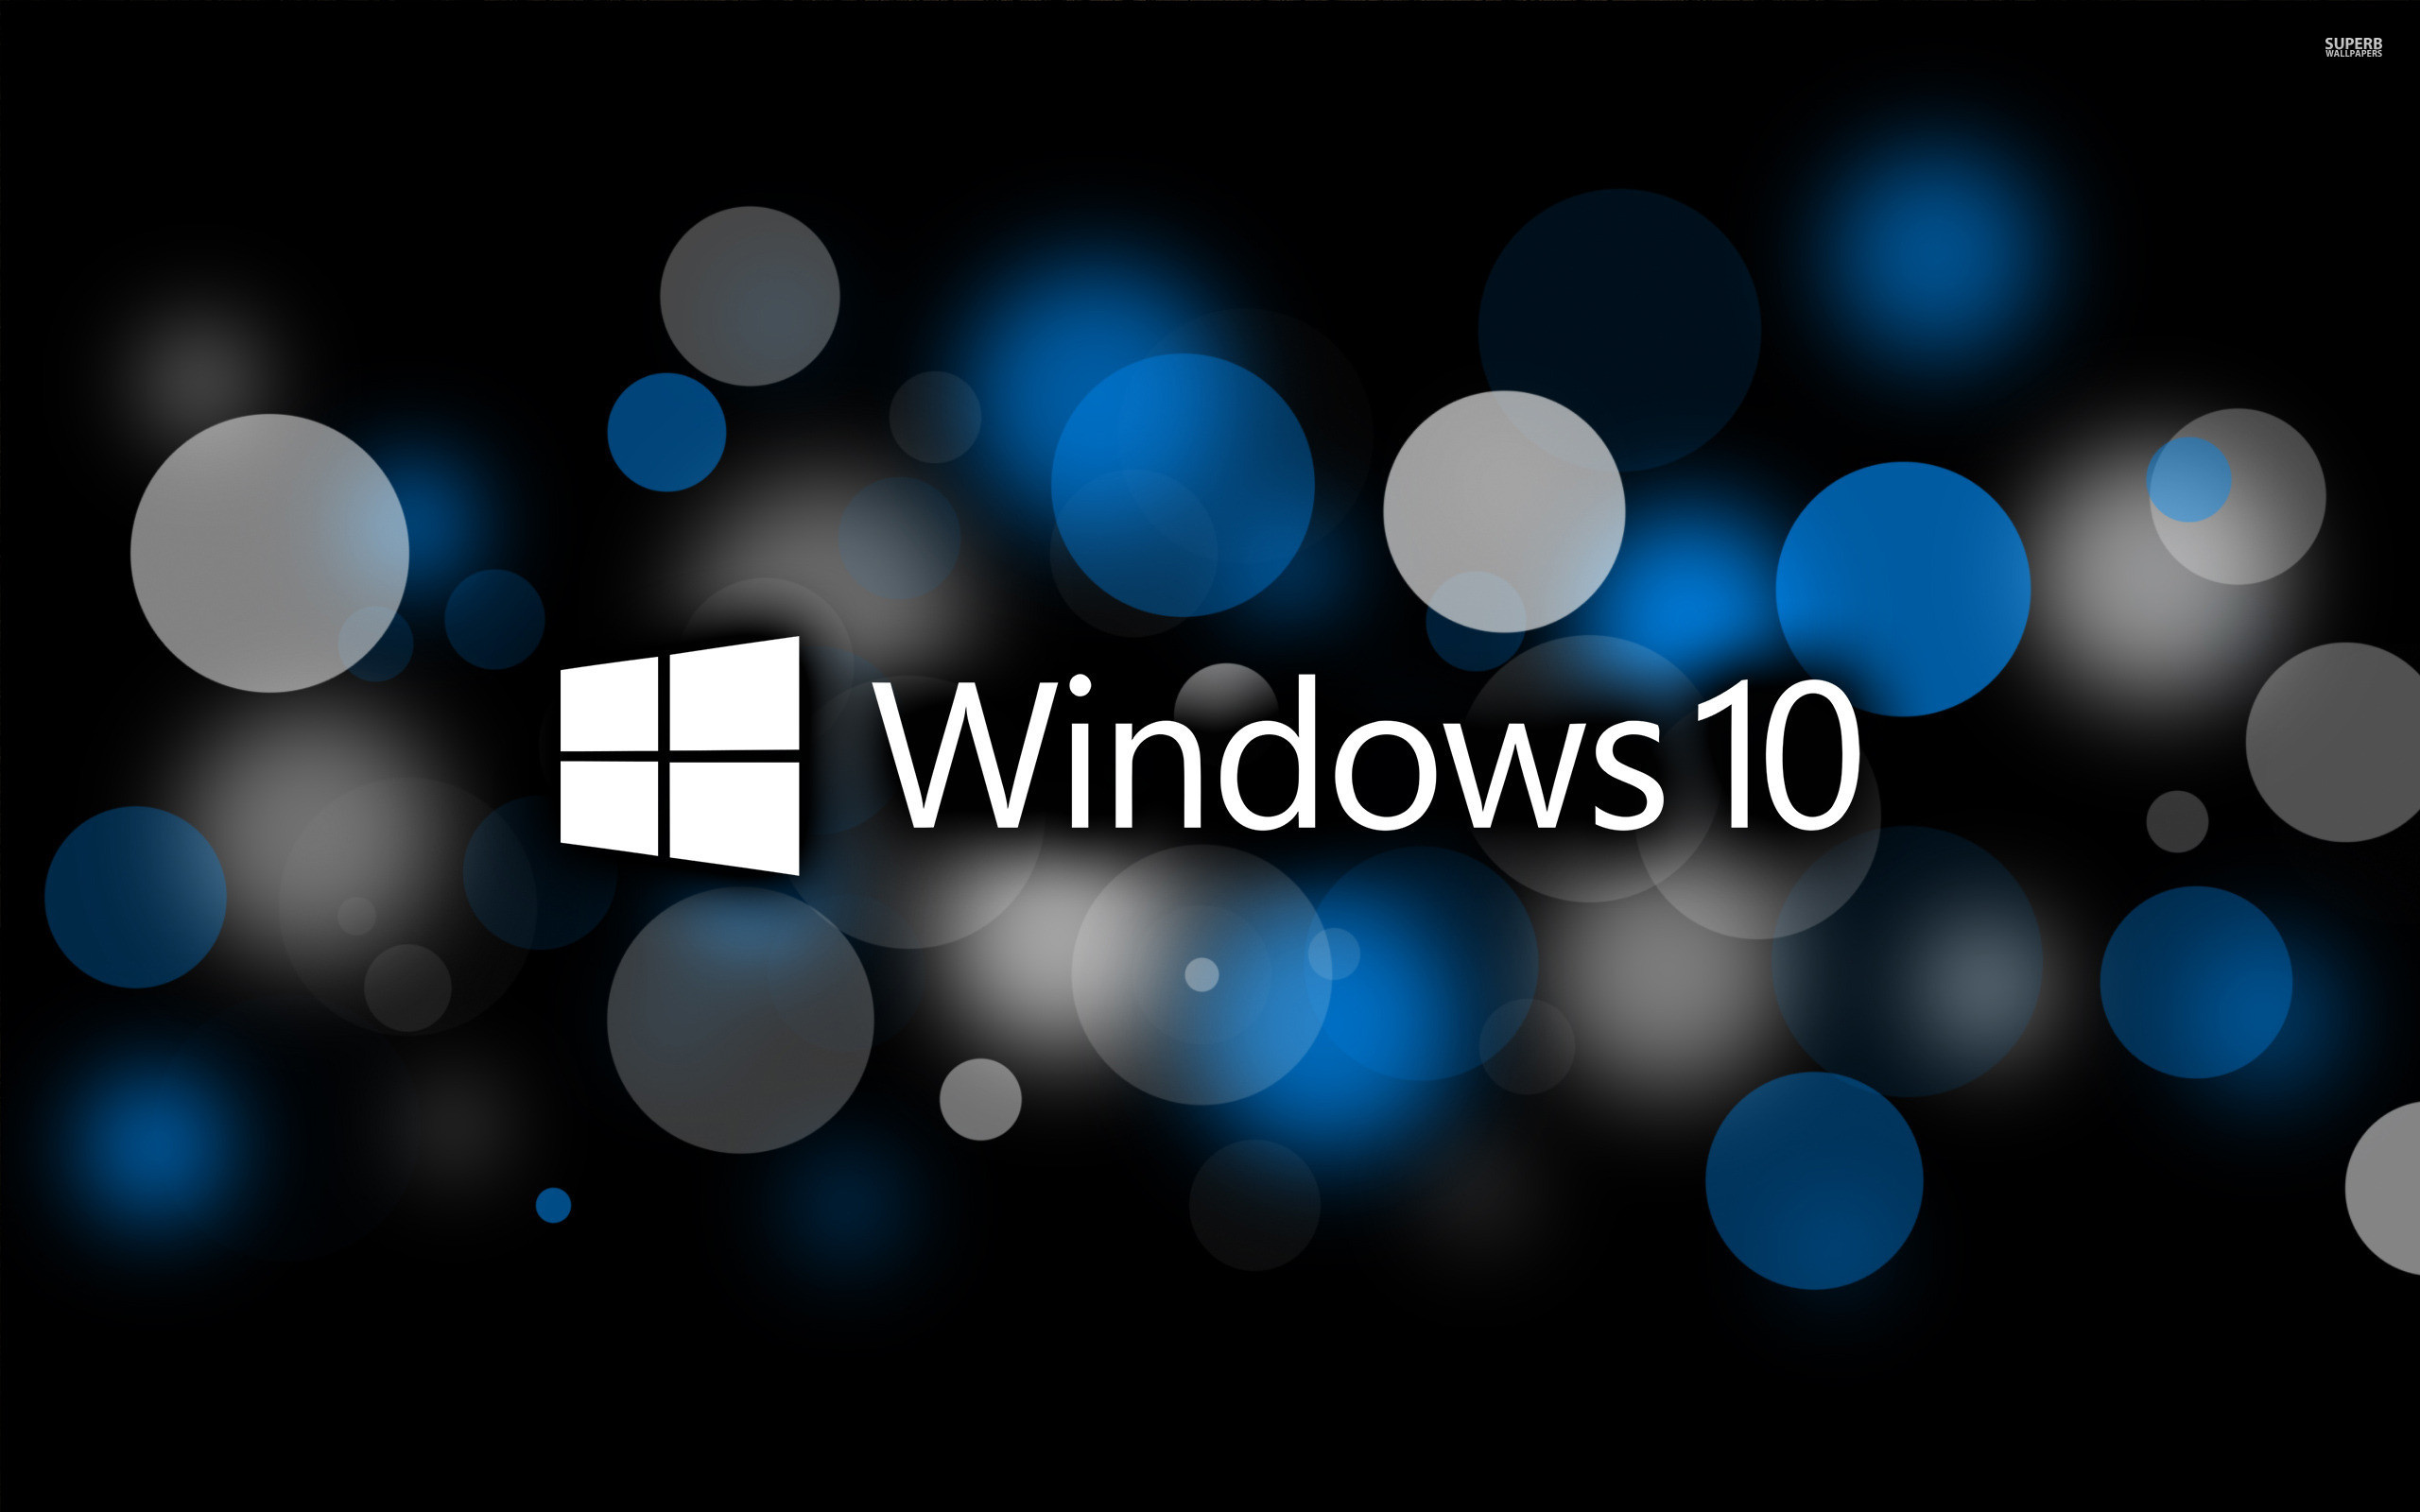 Windows 10 Full Hd Wallpaper 83 Images